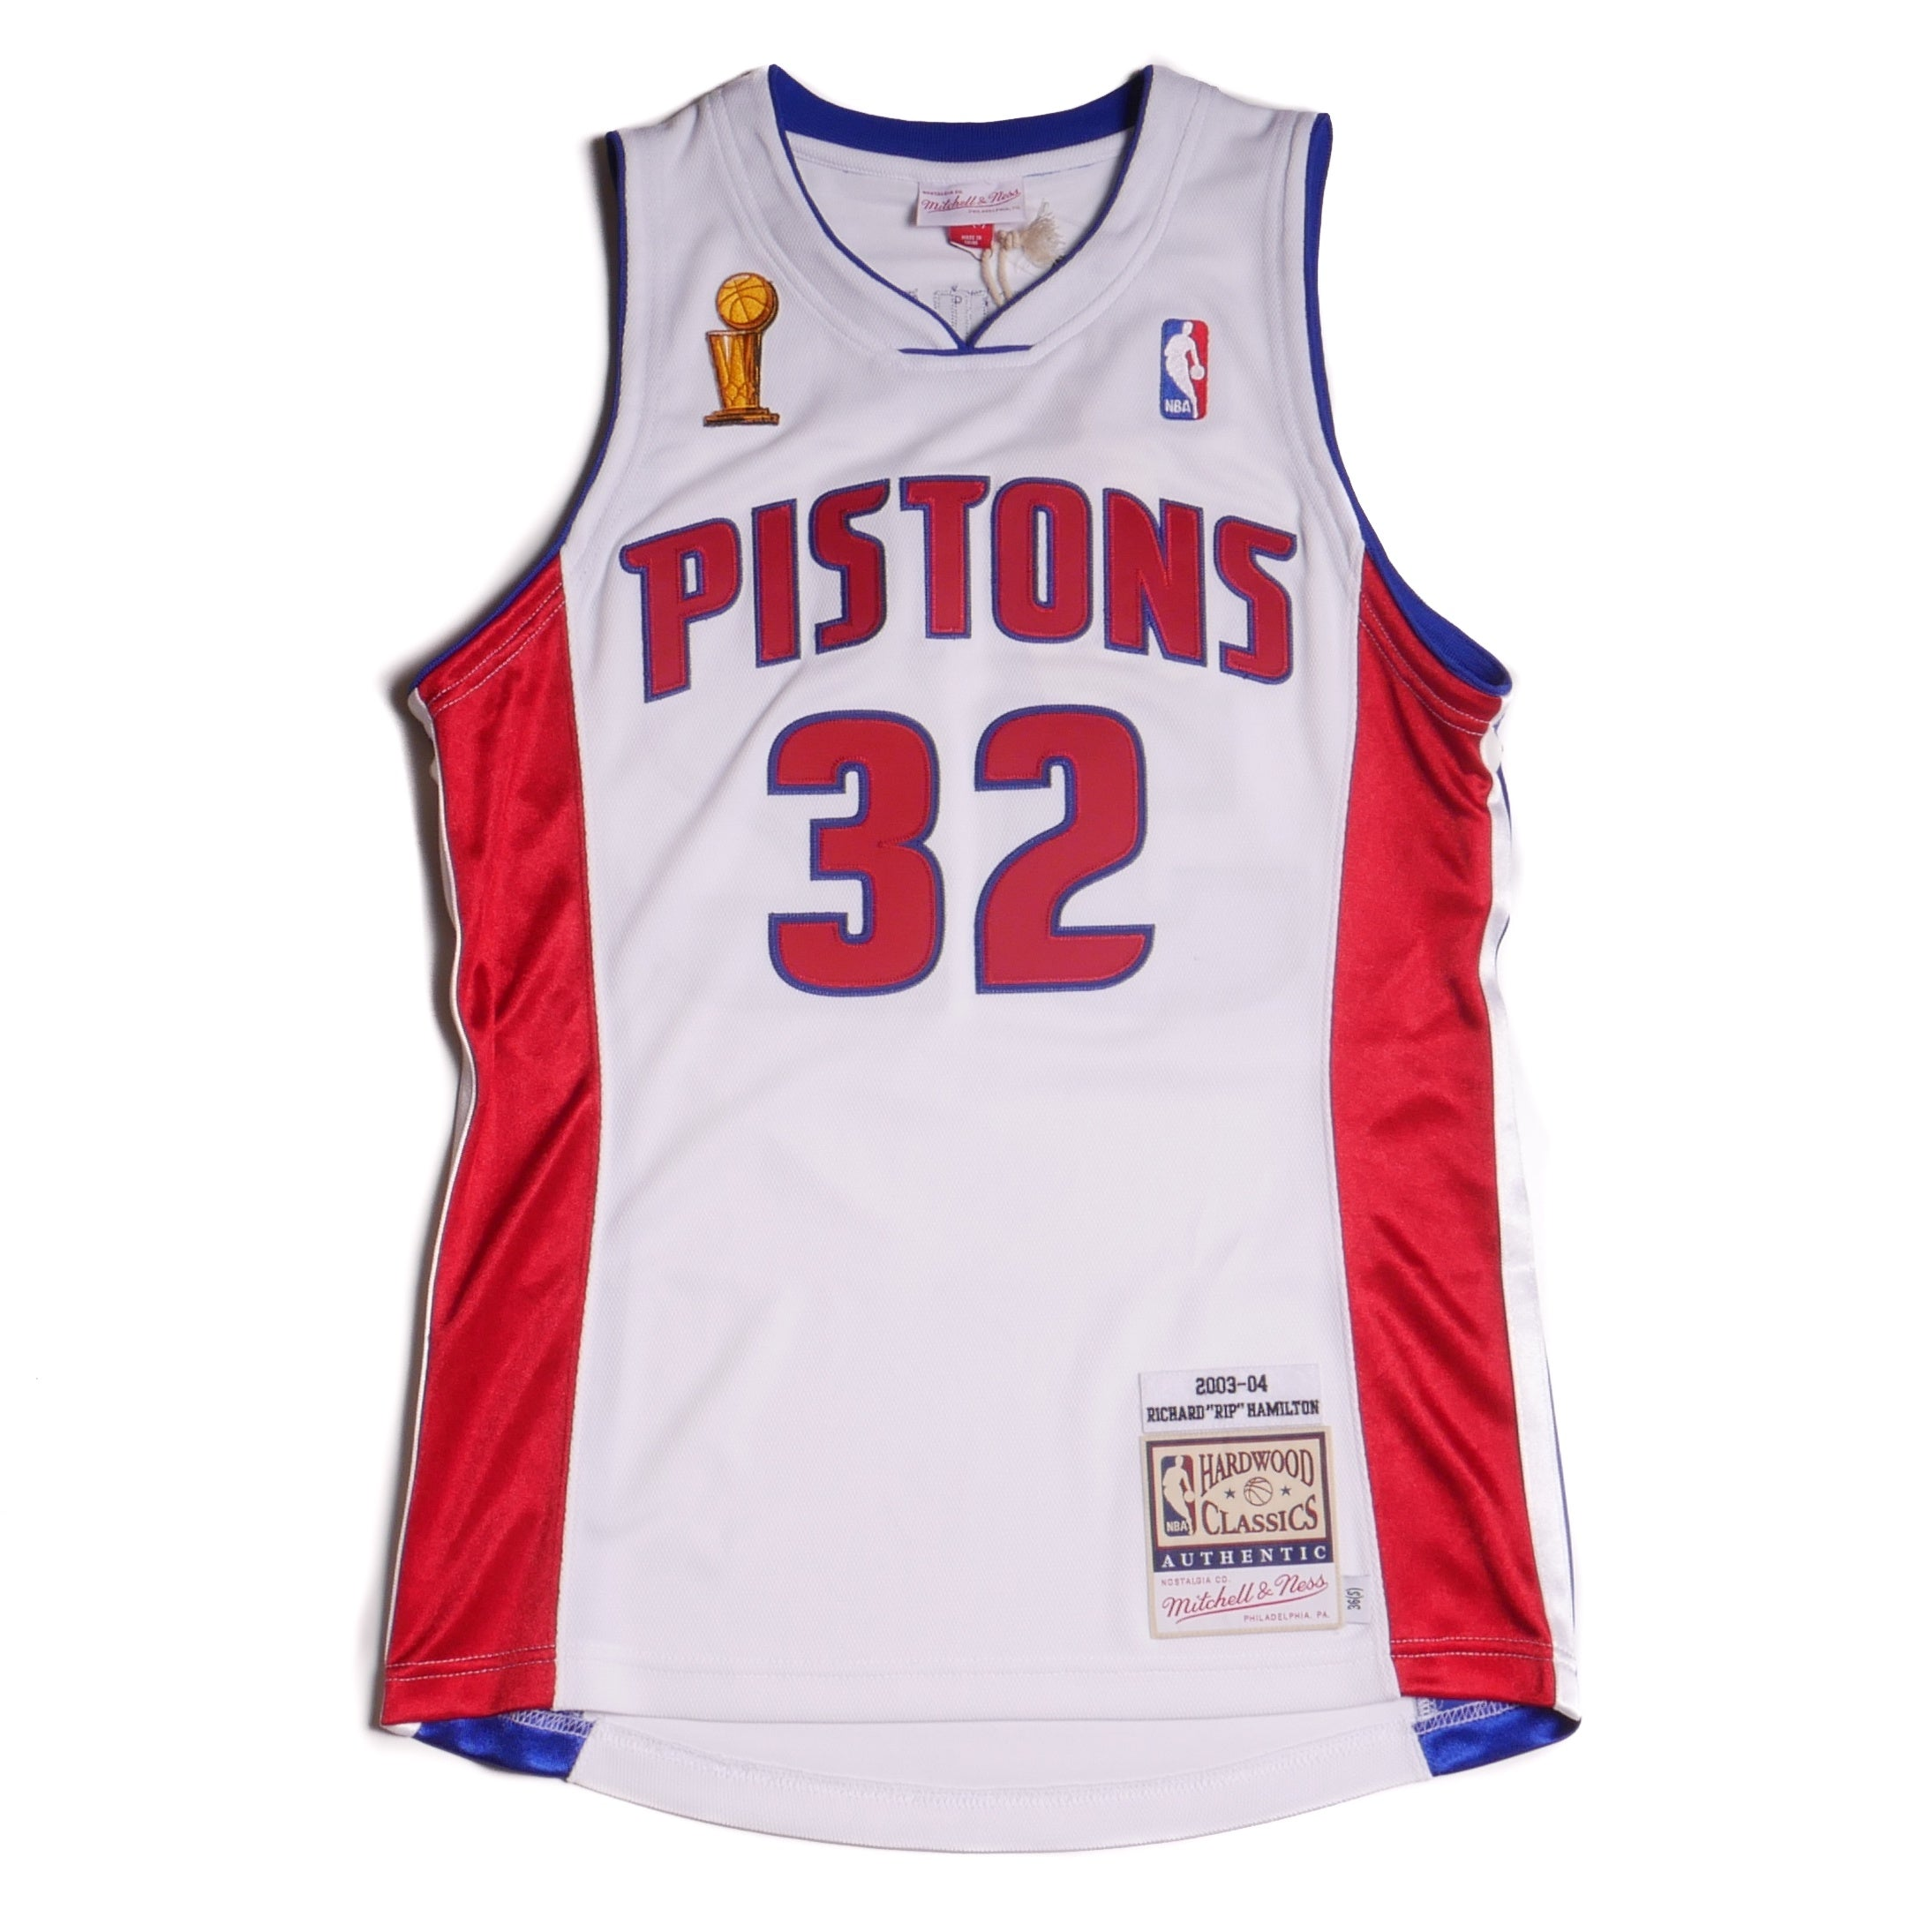 info for f1547 52375 Mitchell & Ness Authentic Detroit Pistons Jersey 03-04 Finals Hamilton